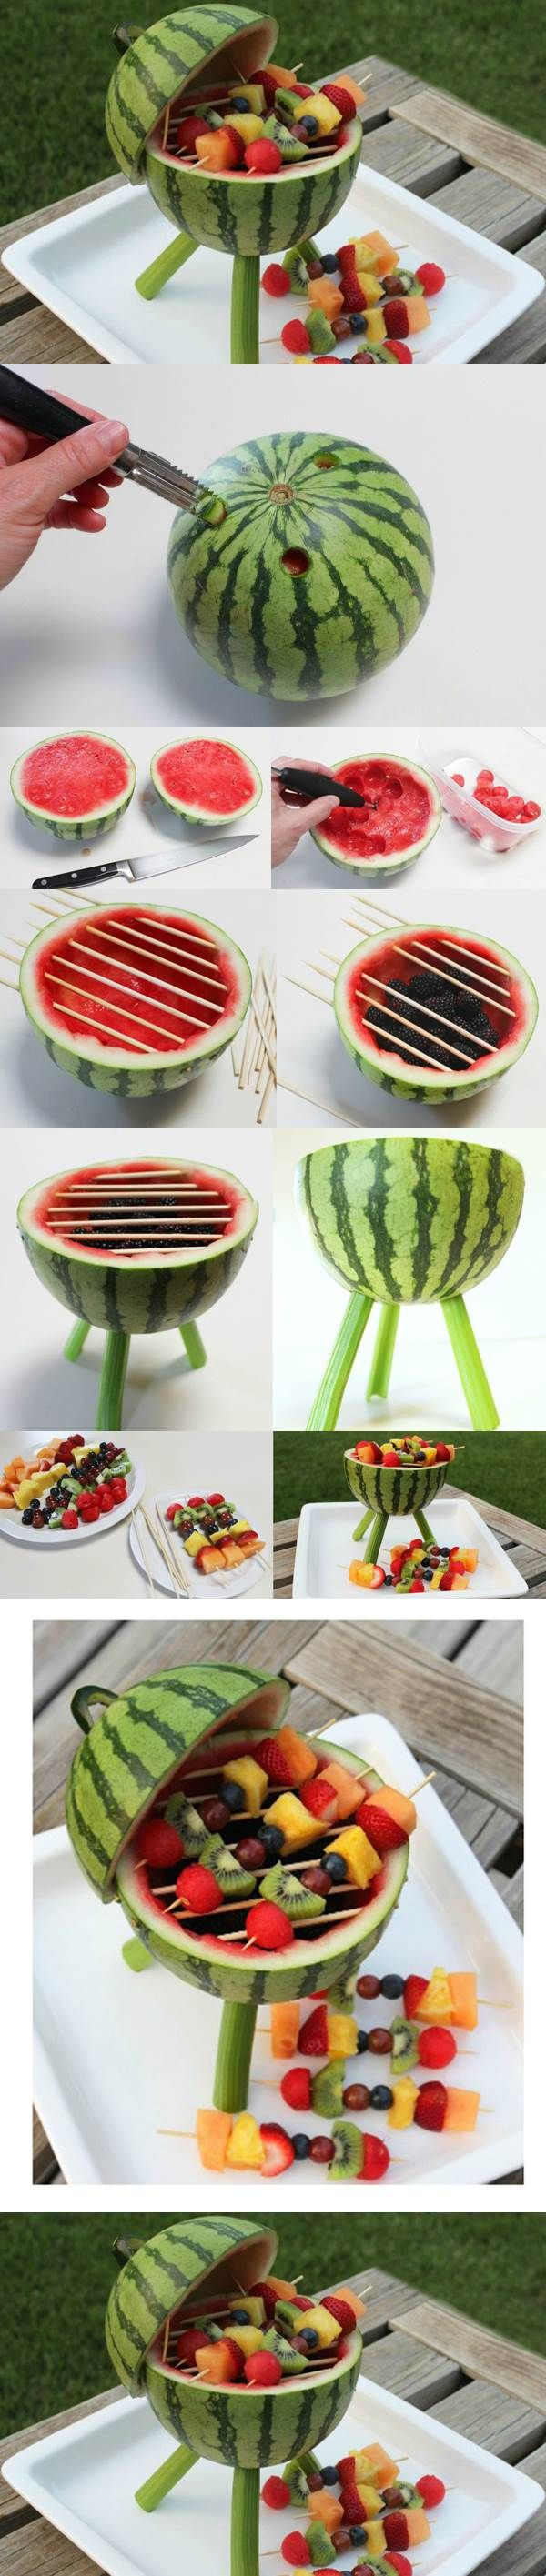 Food Art DIY – Watermelon Barbecue Grill | iCreativeIdeas.com Like Us on Facebook == https://www.facebook.com/icreativeideas